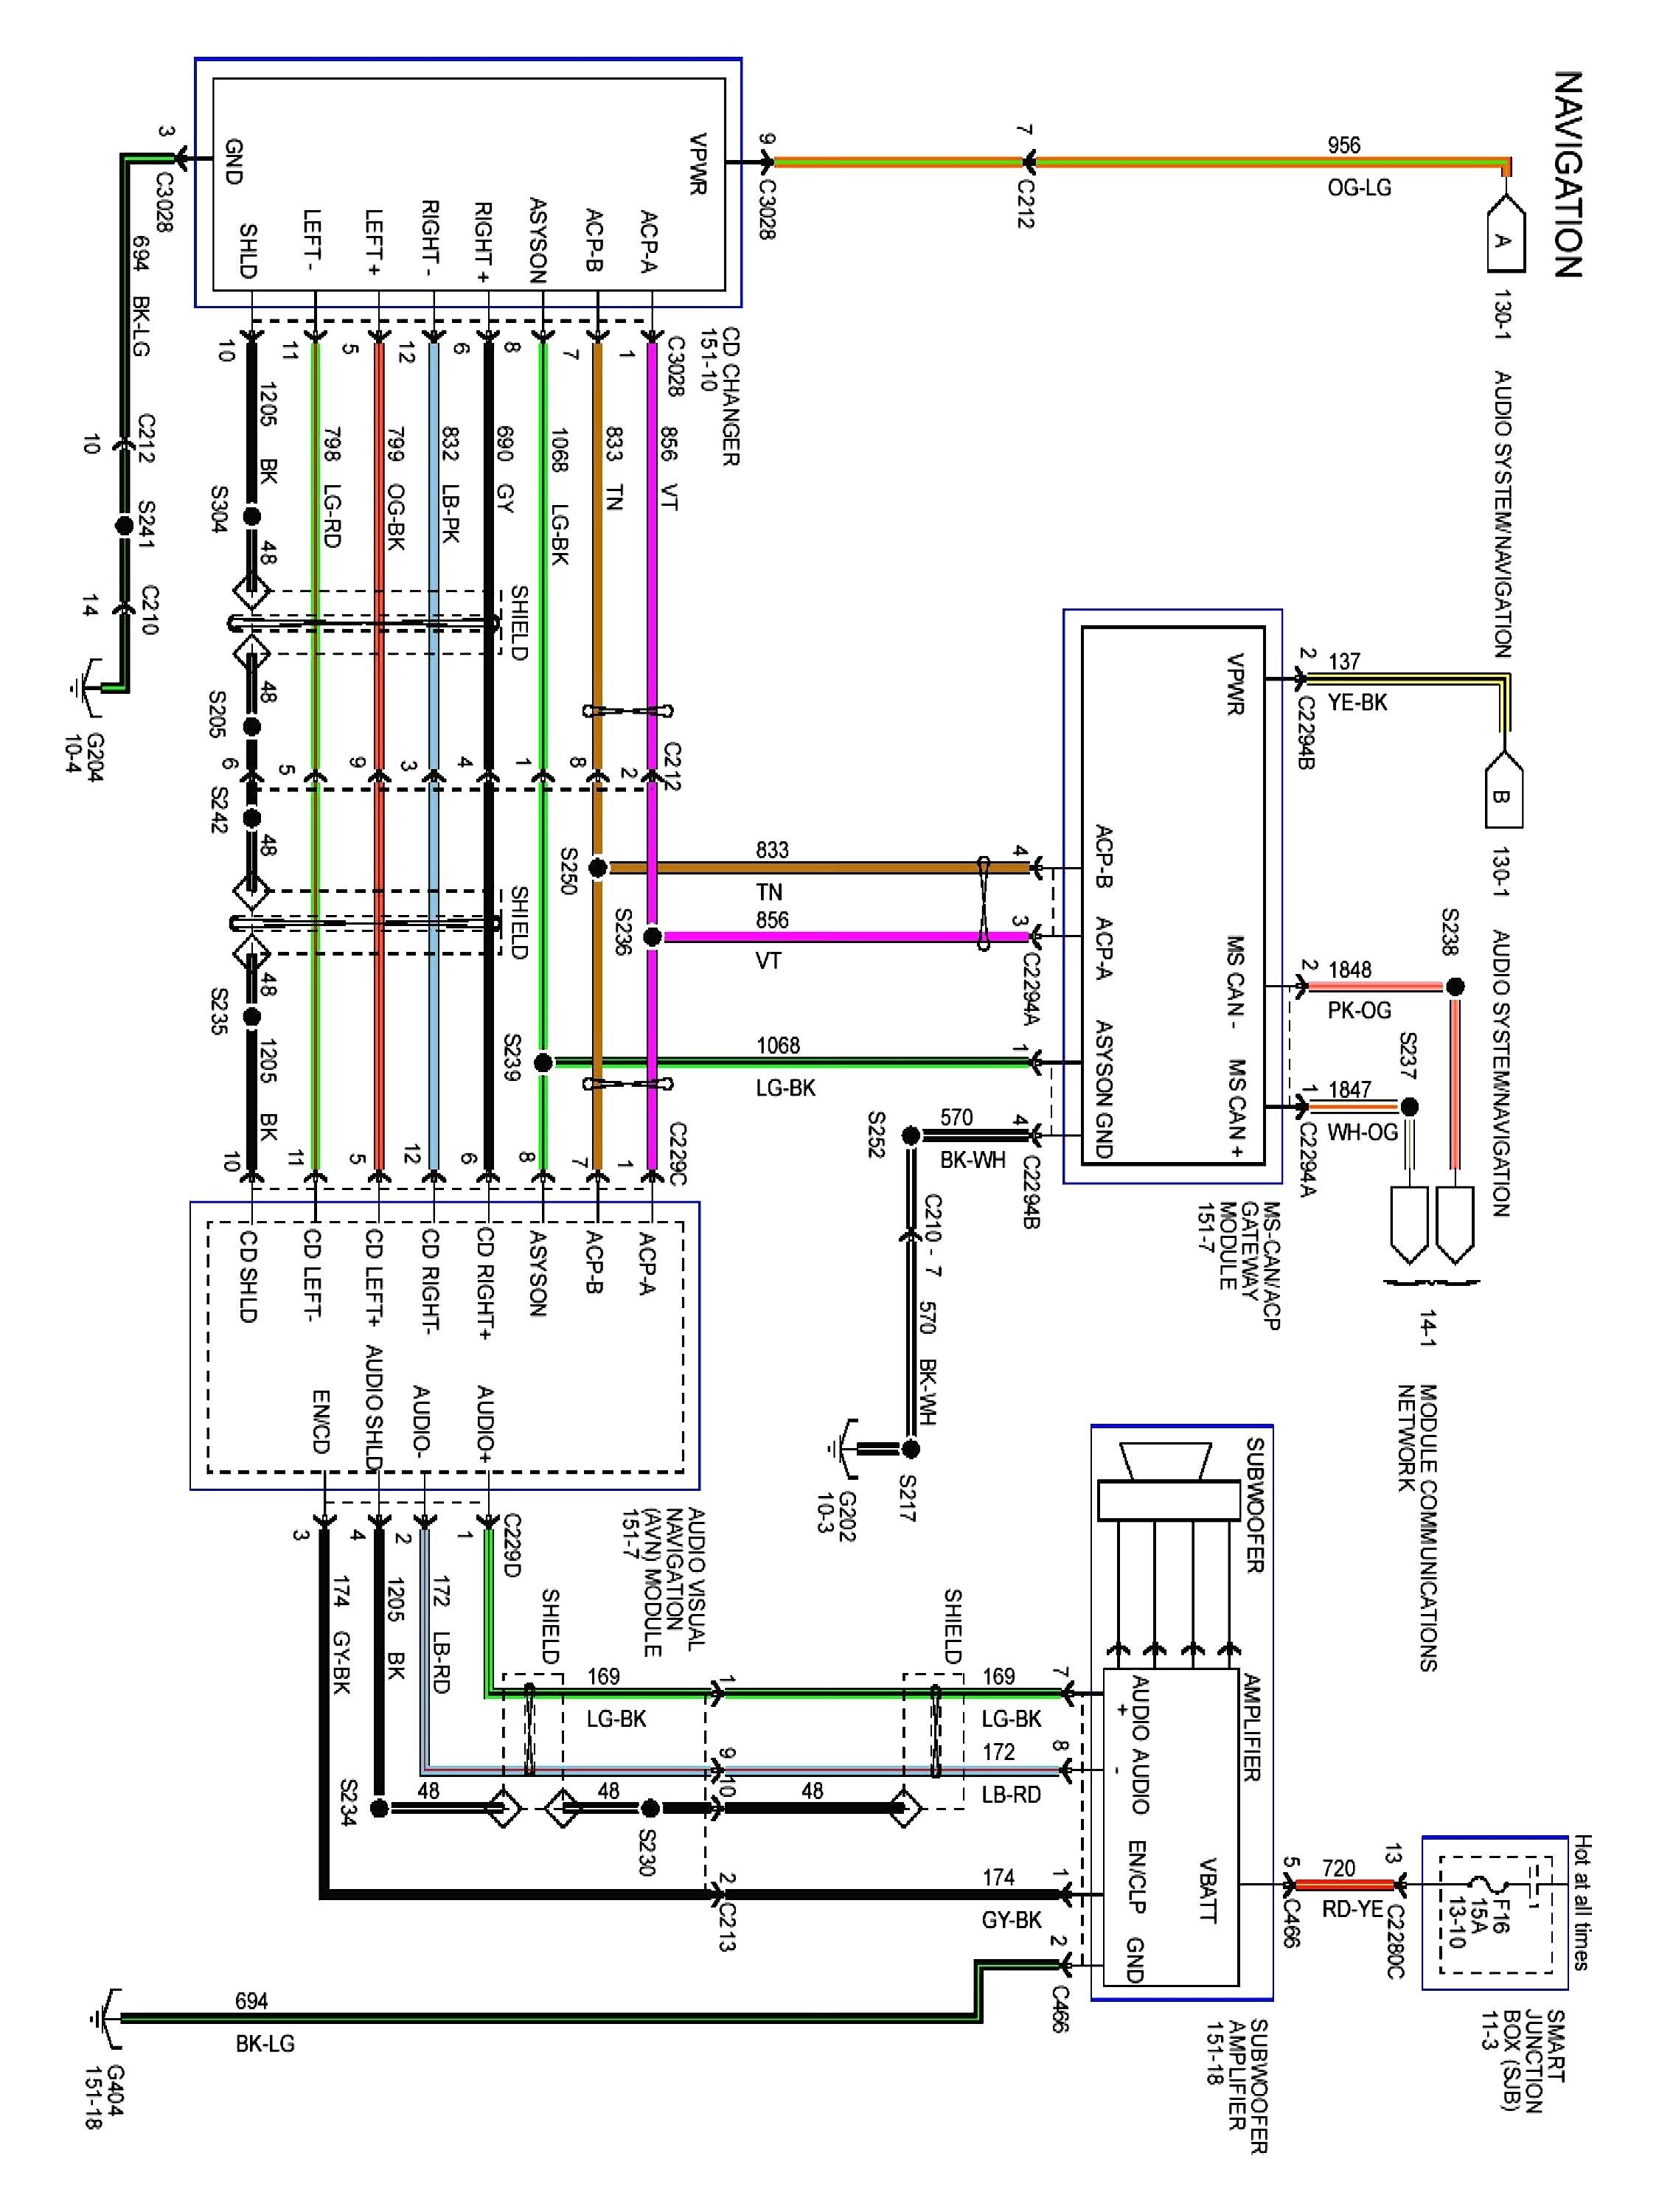 Wiring Diagram For Dodge Ram 1500 Radio